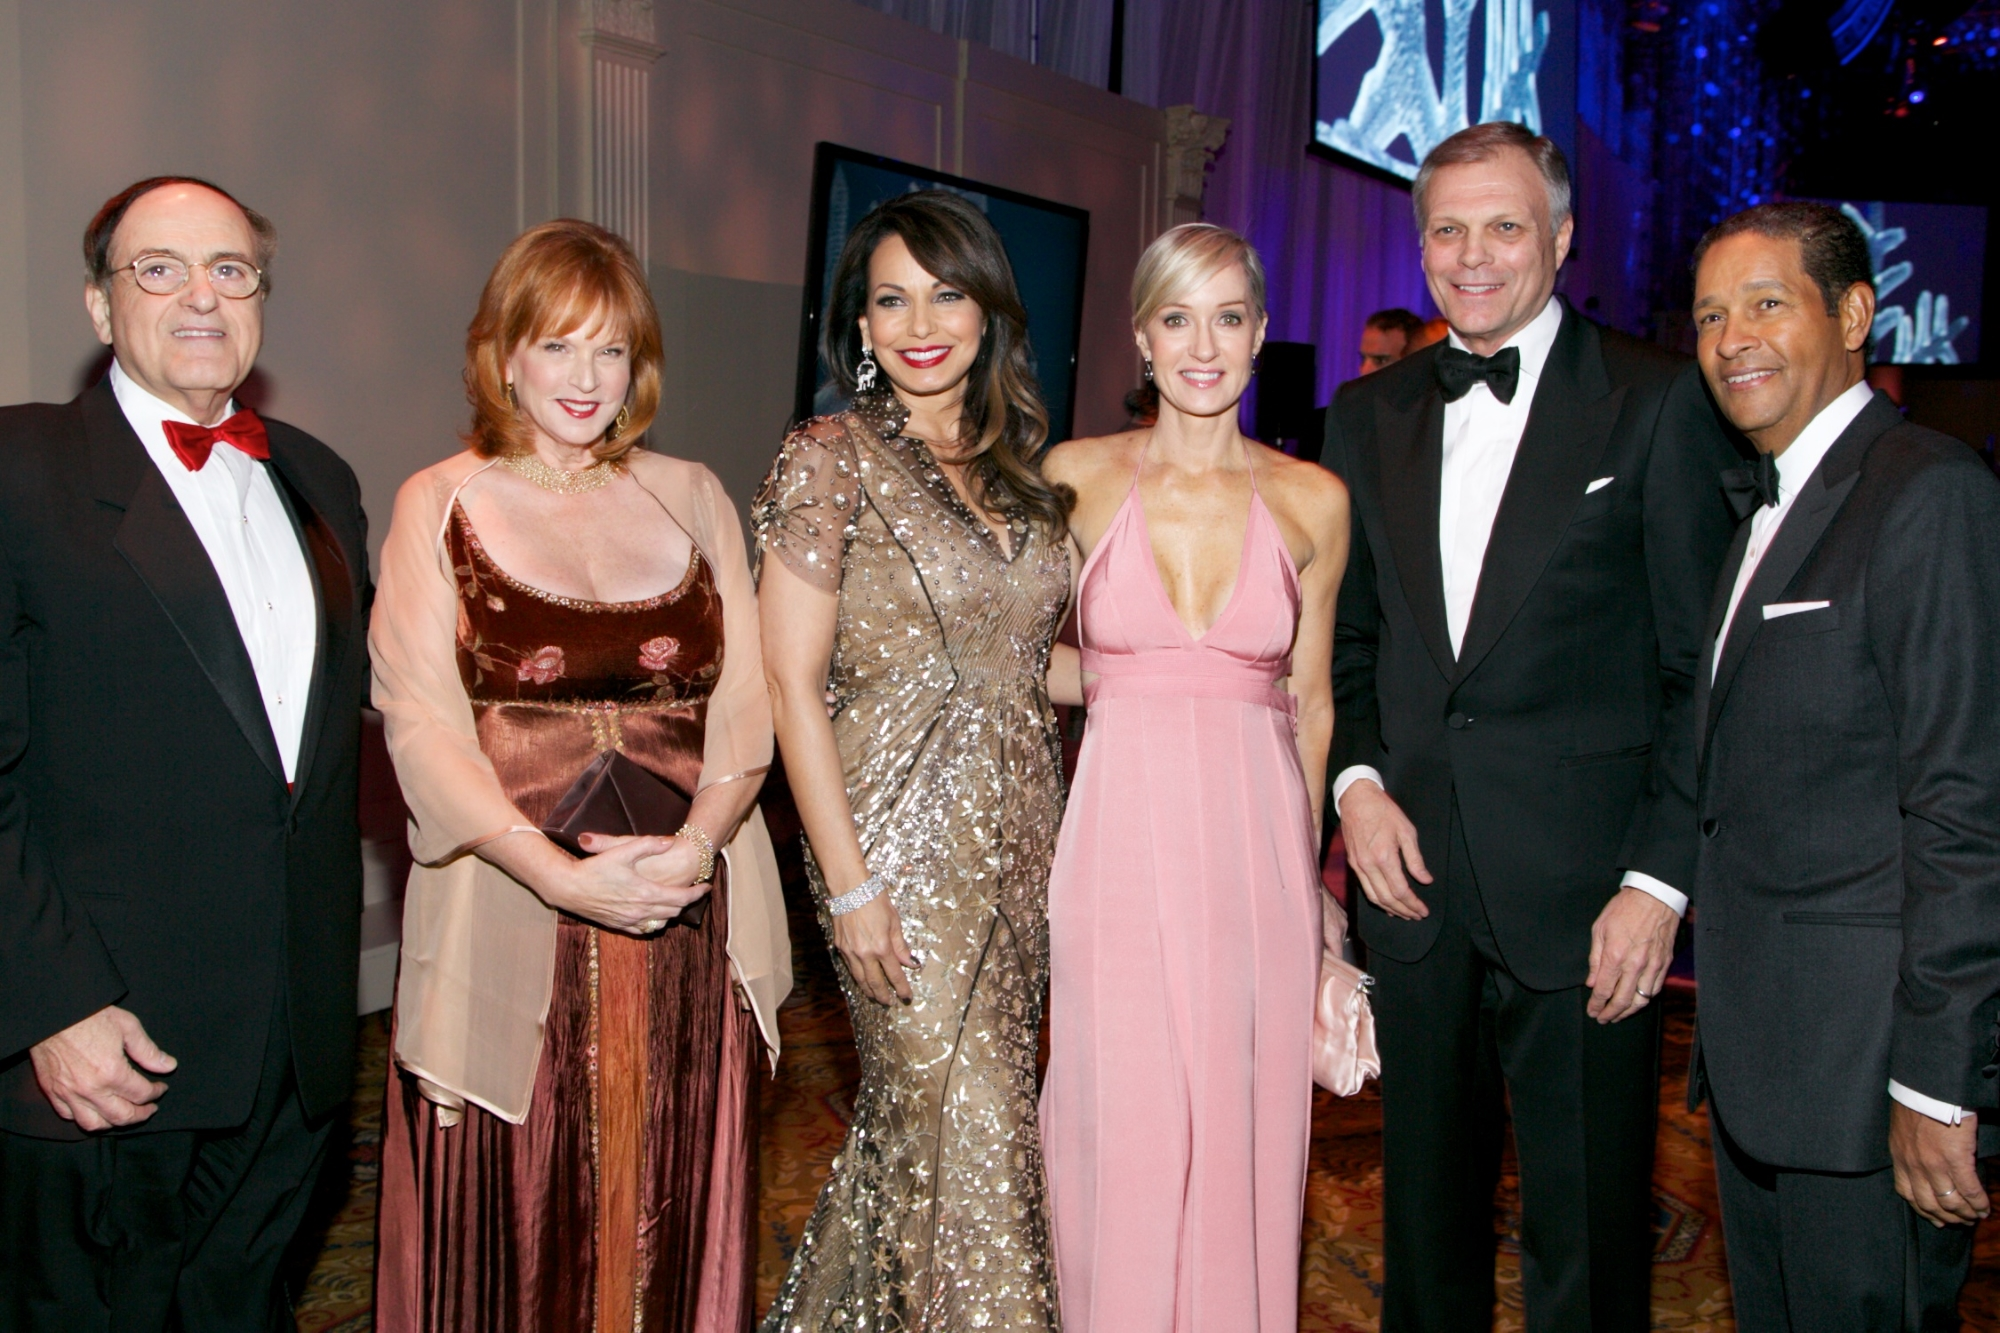 George and Christine Stonbely, Moll Anderson, Hilary Gumbel, Charlie Anderson and Bryant Gumbel © 2013 Julie Skarratt Photography Inc./U.S. Fund for UNICEF